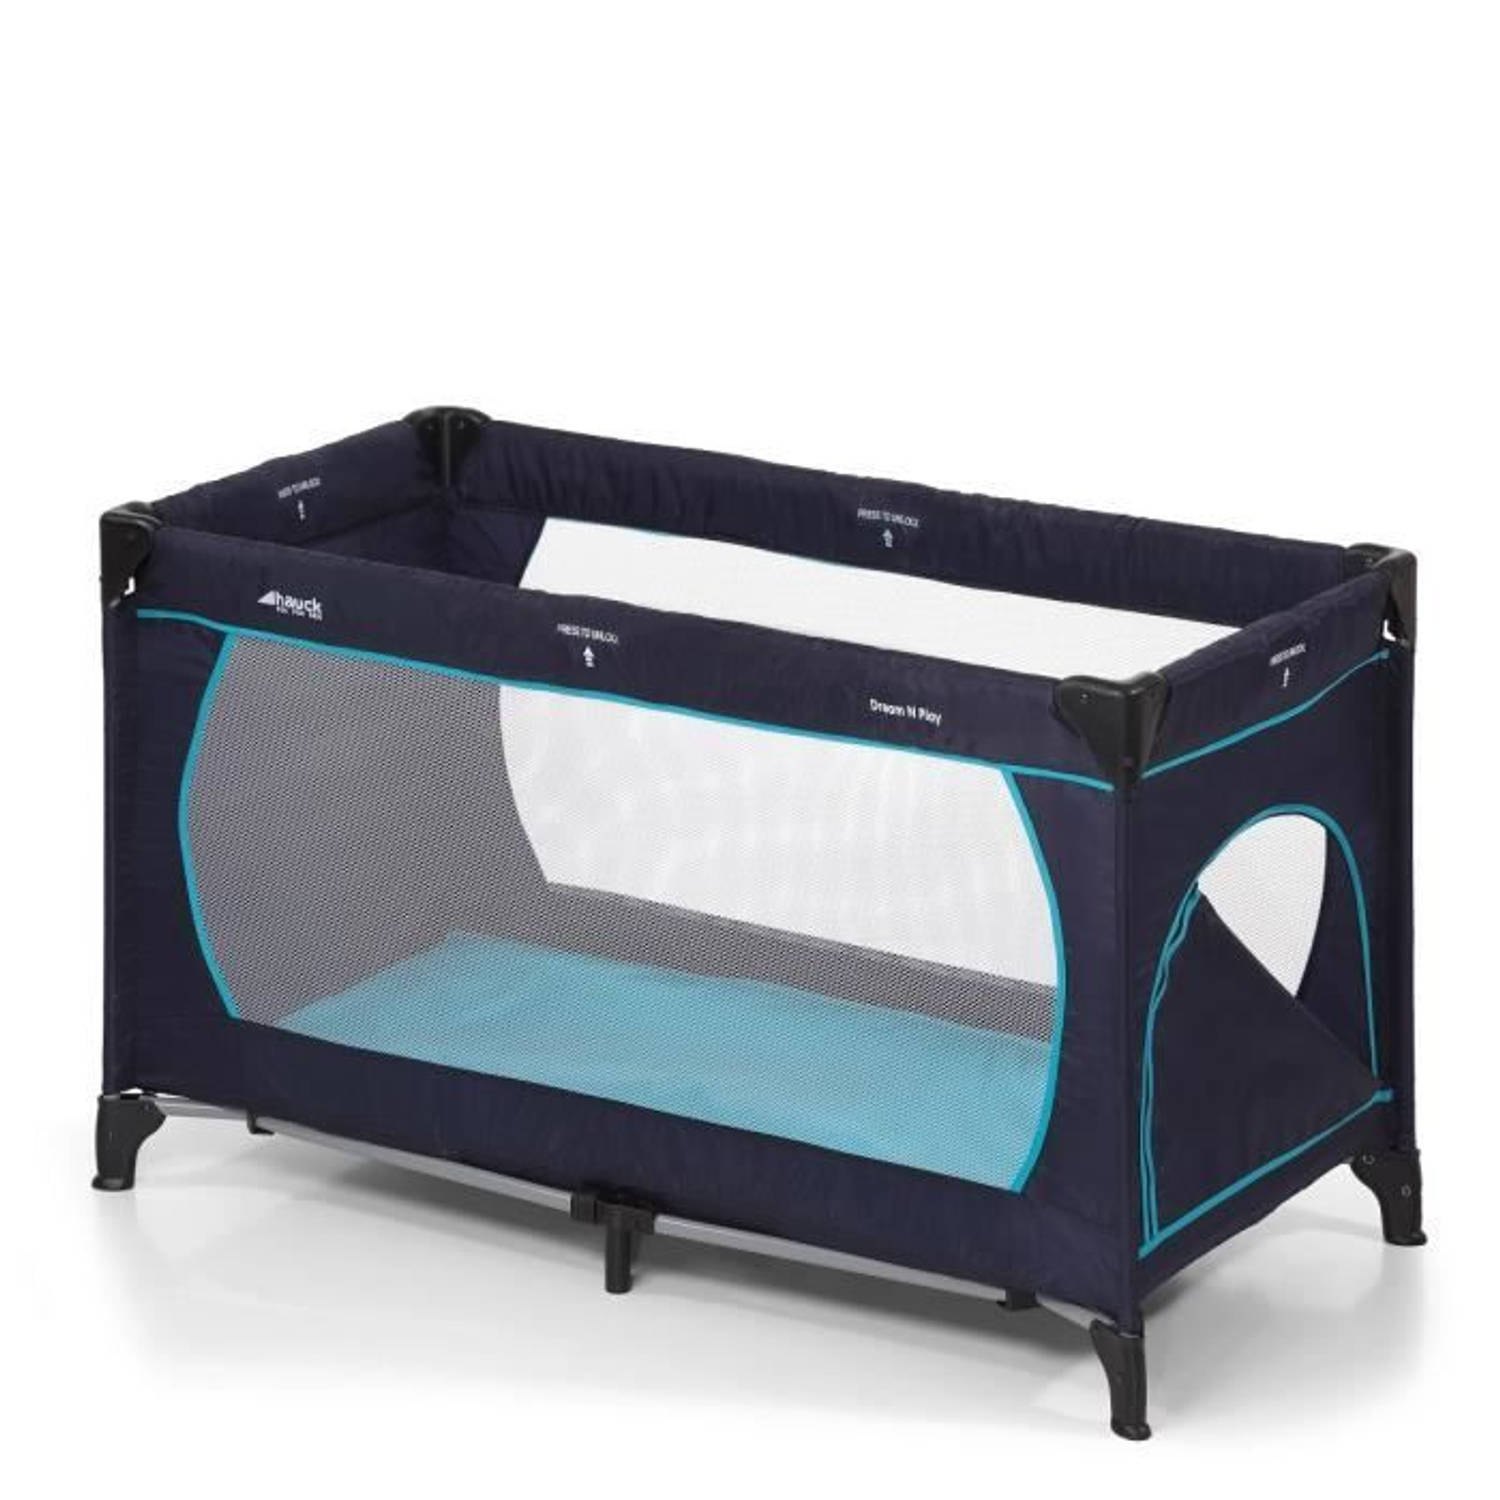 Reisbed Dream'n Play Plus Marineblauw, Hauck